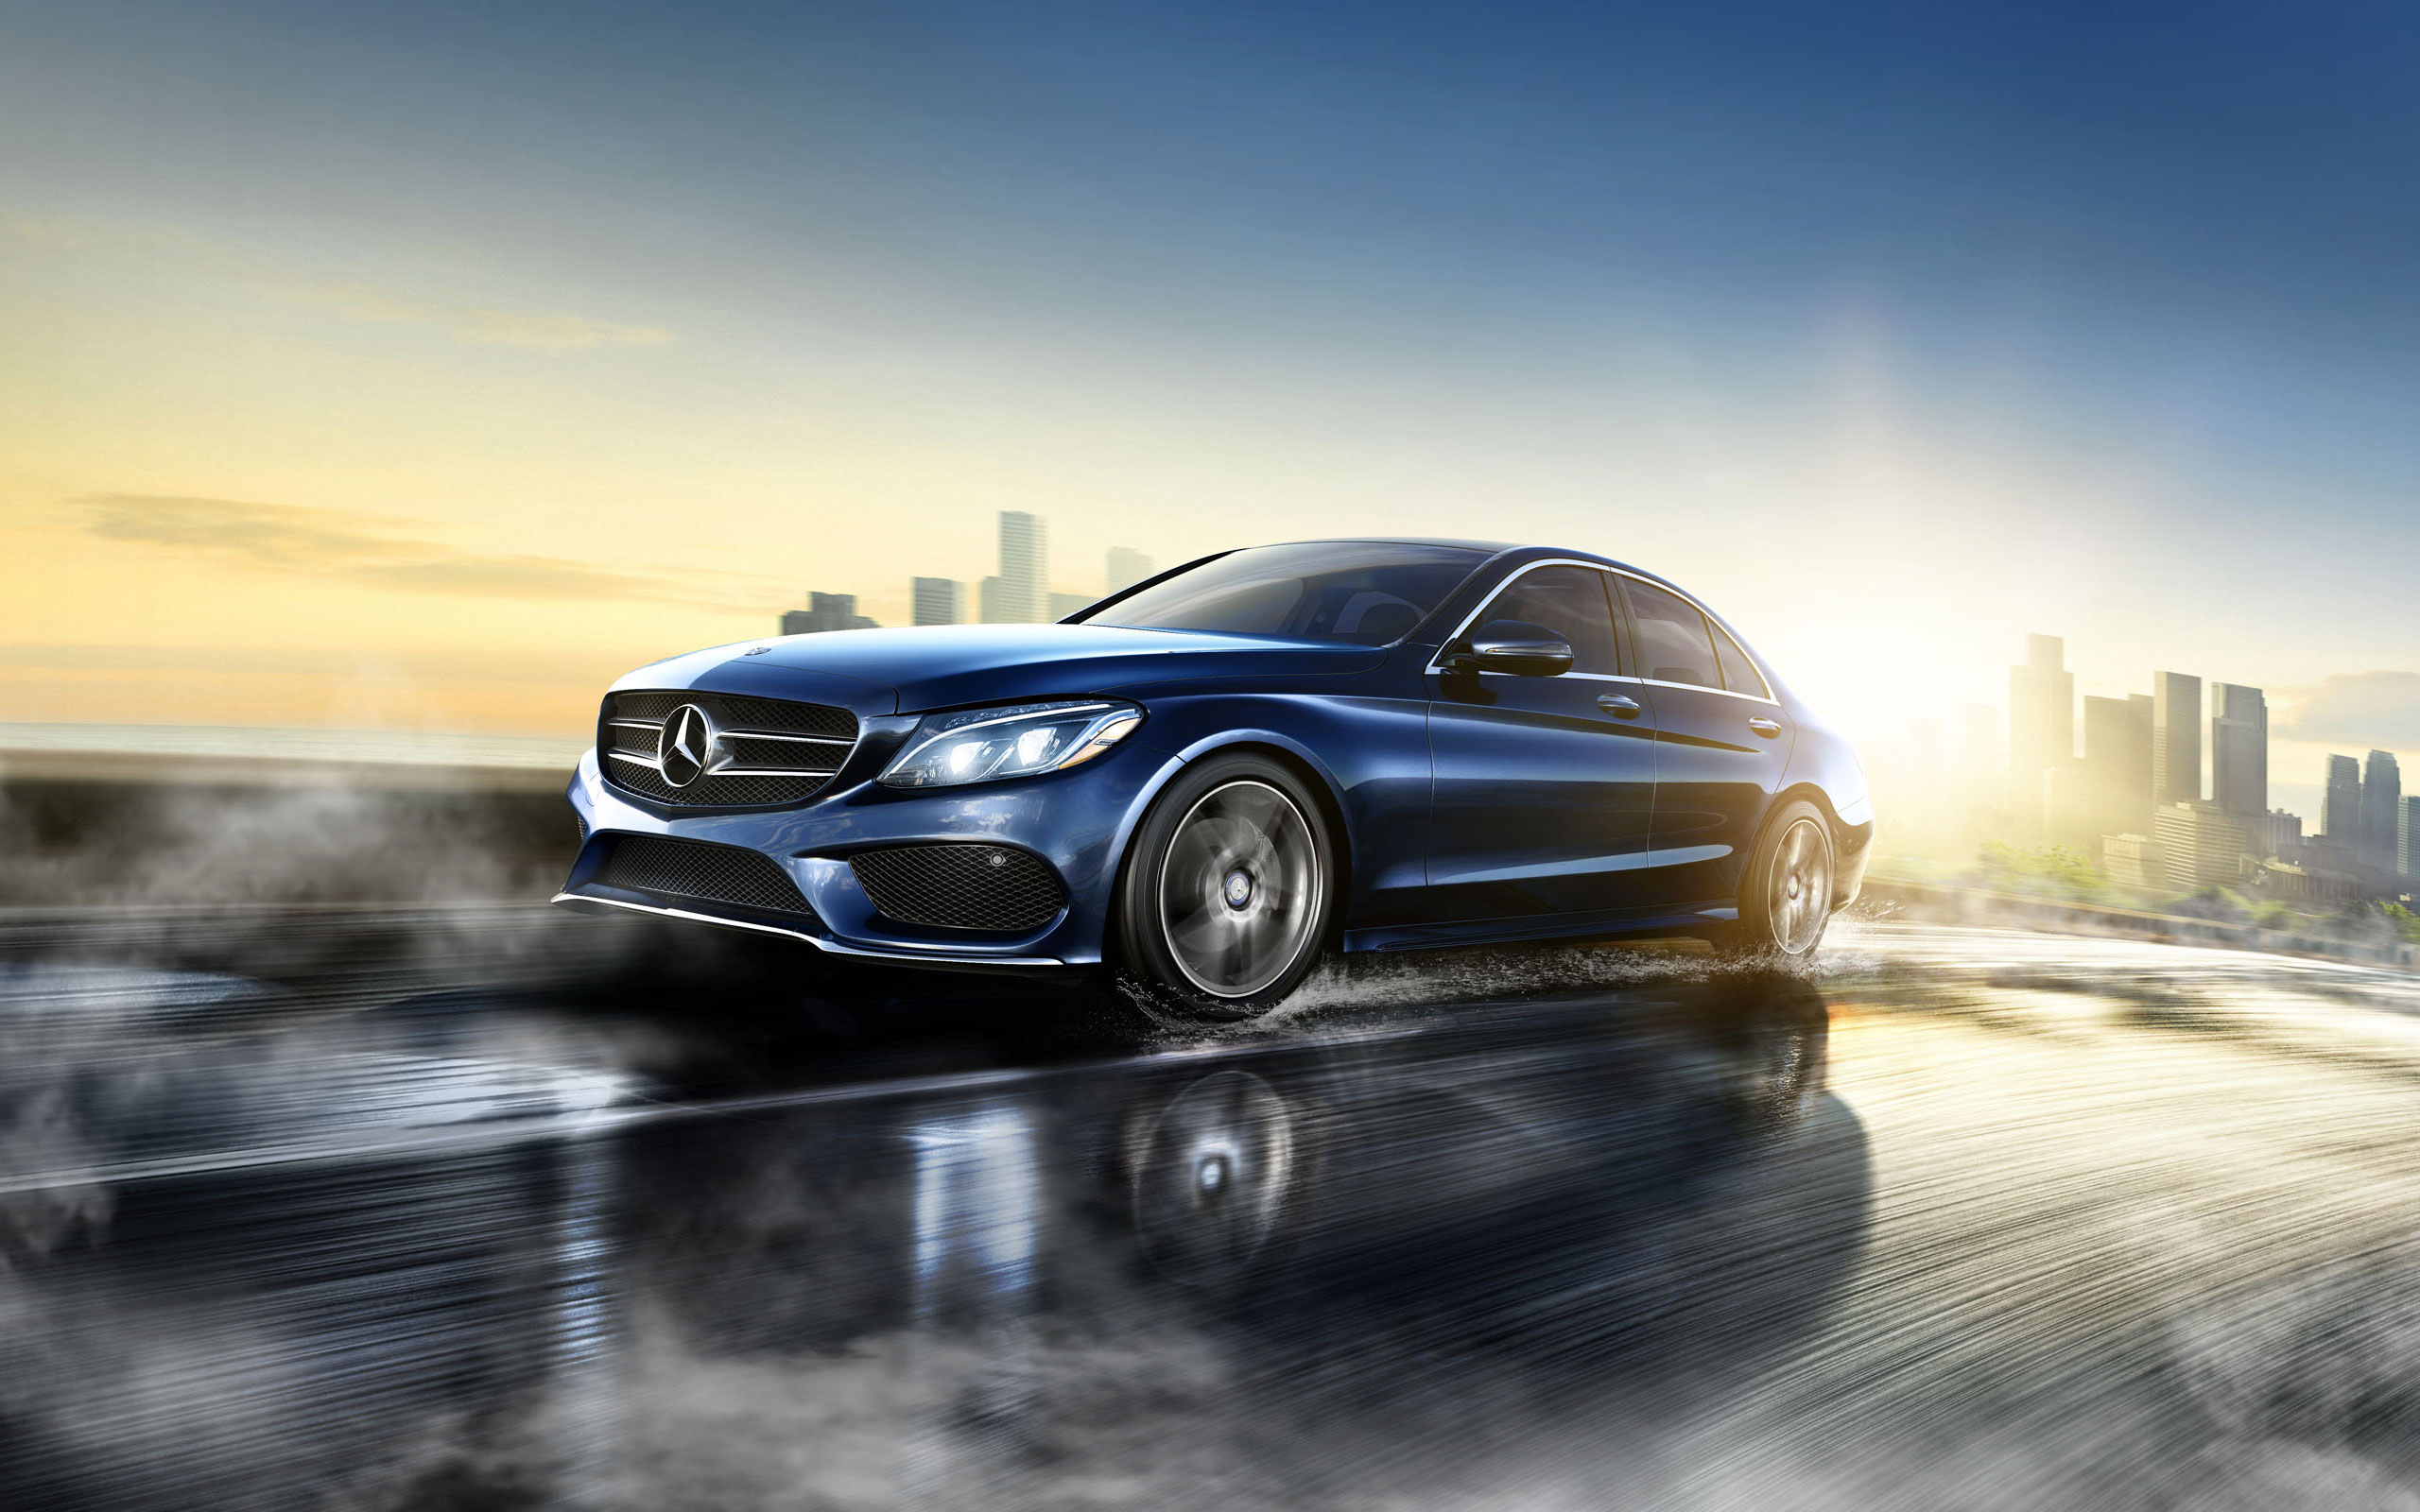 Mercedes-Benz launched the new C-Class at Rs. 40.90 lakh